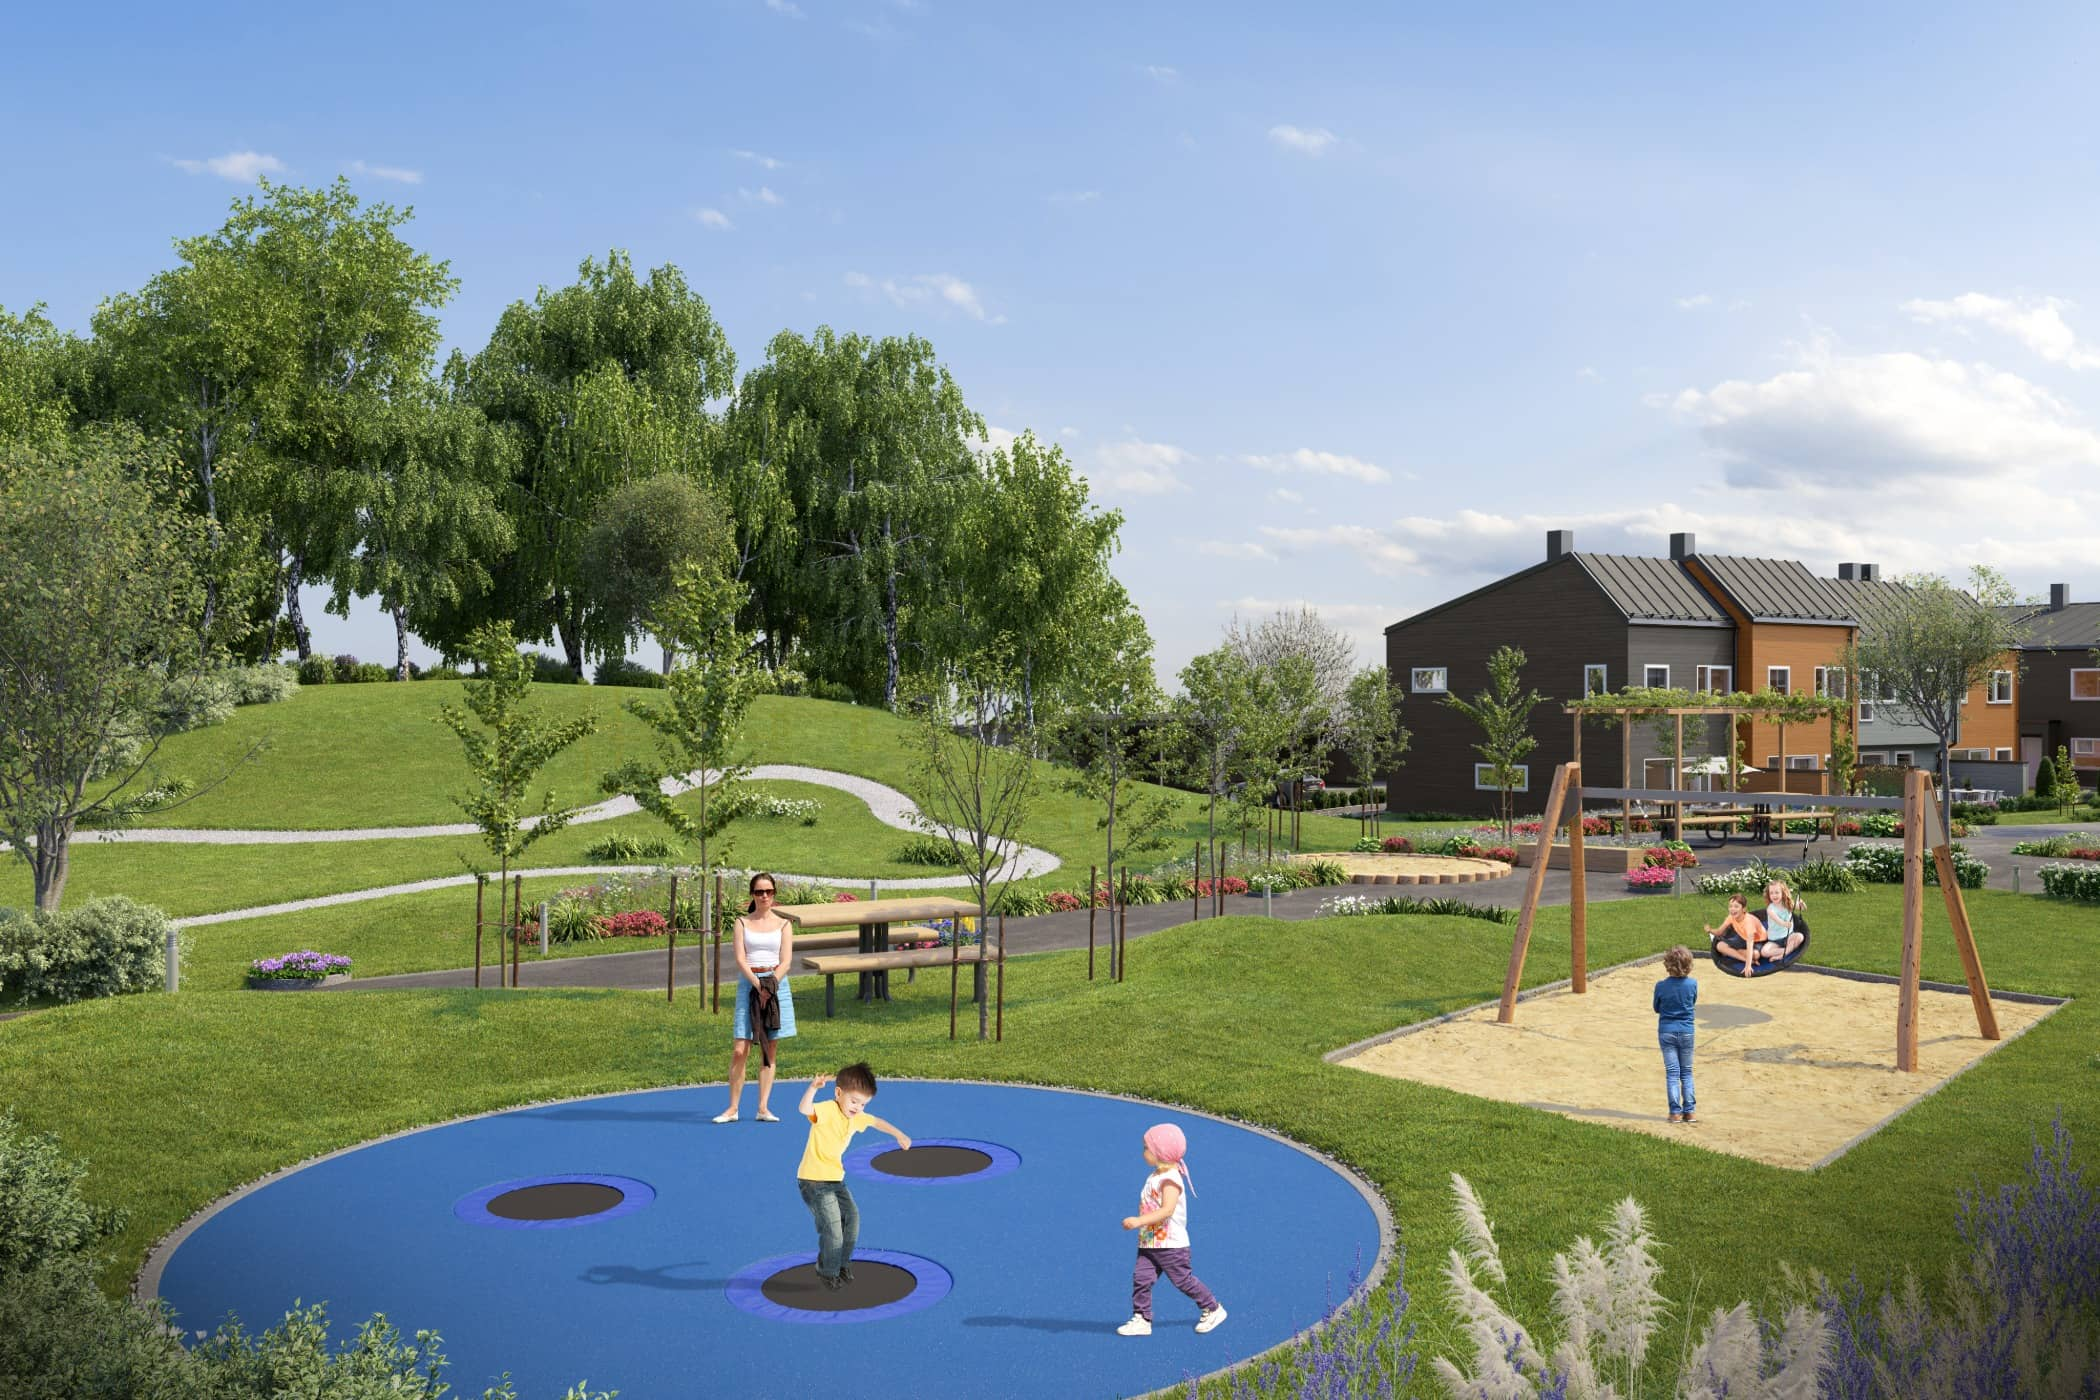 Human settlement, Residential area, Public space, Grass, Playground, Leisure, Property